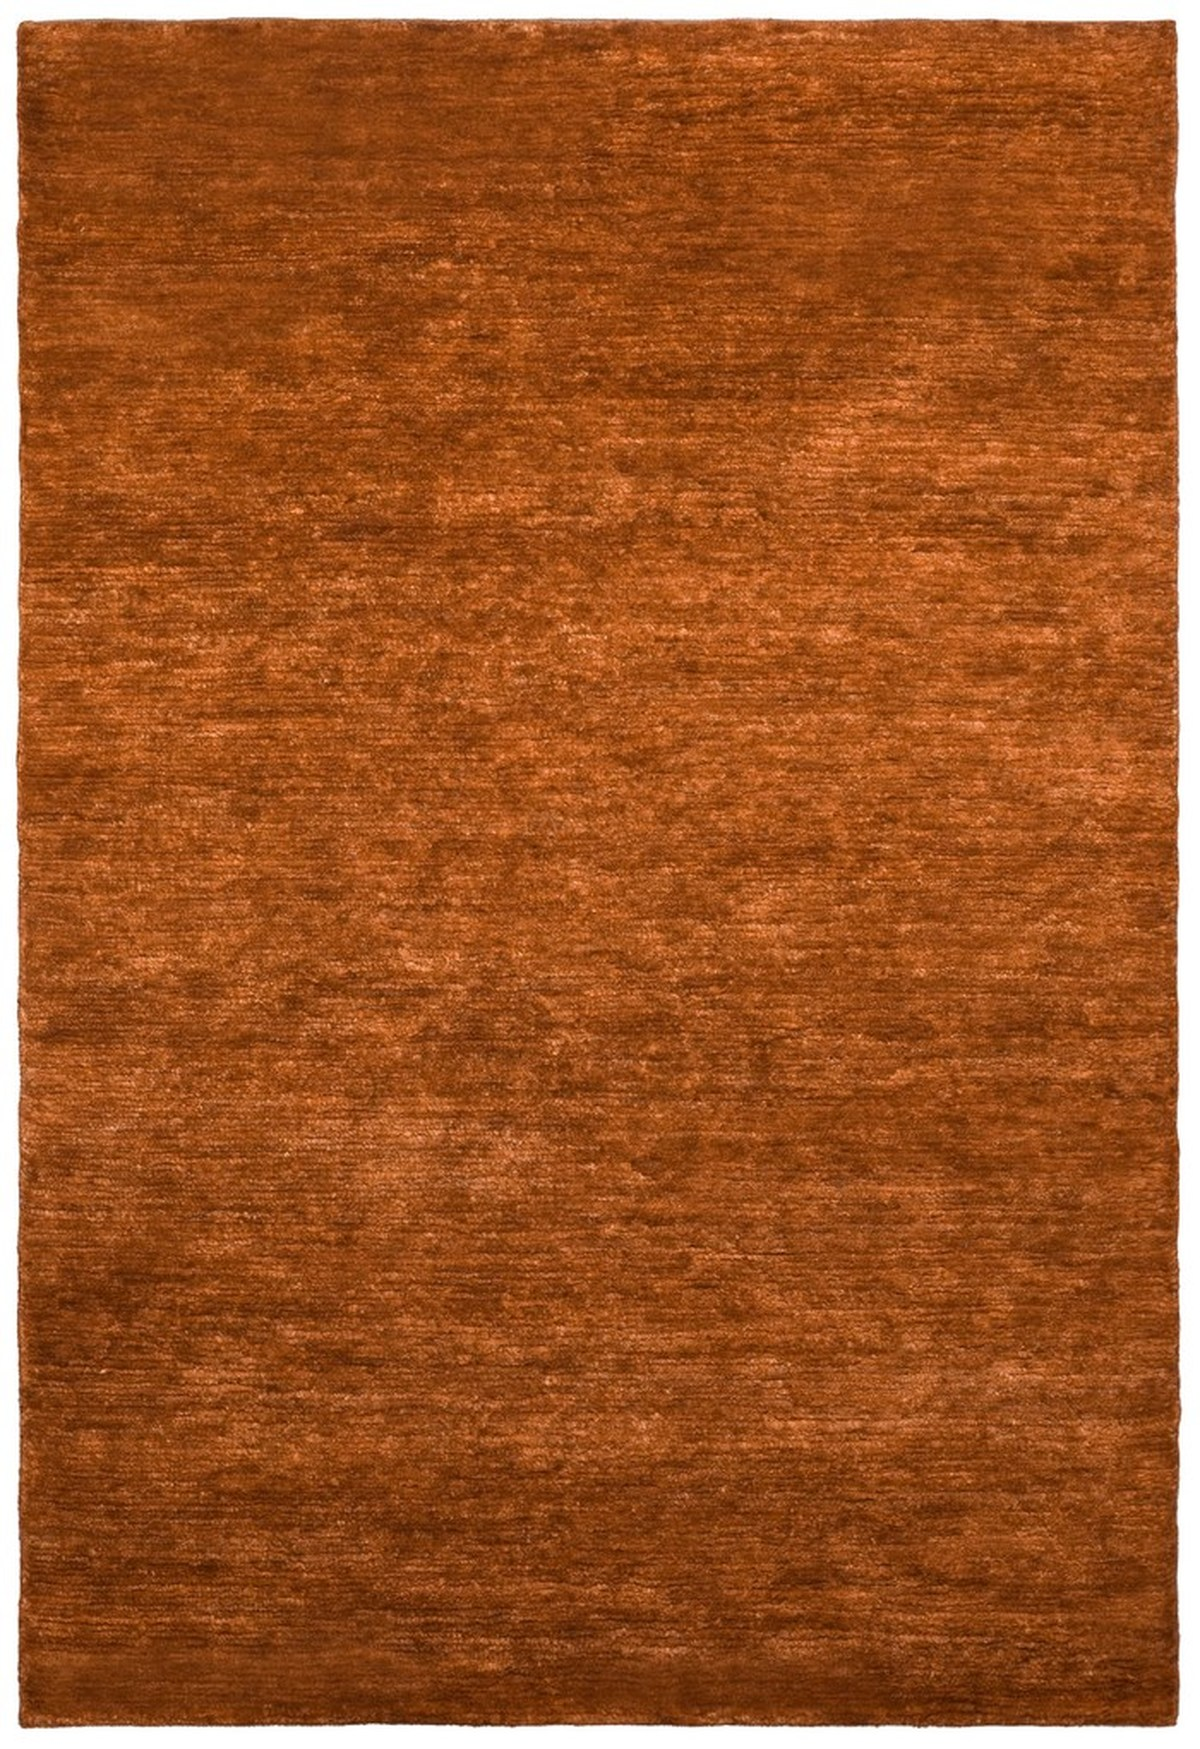 Rust Coloured Rug Area Rug Ideas